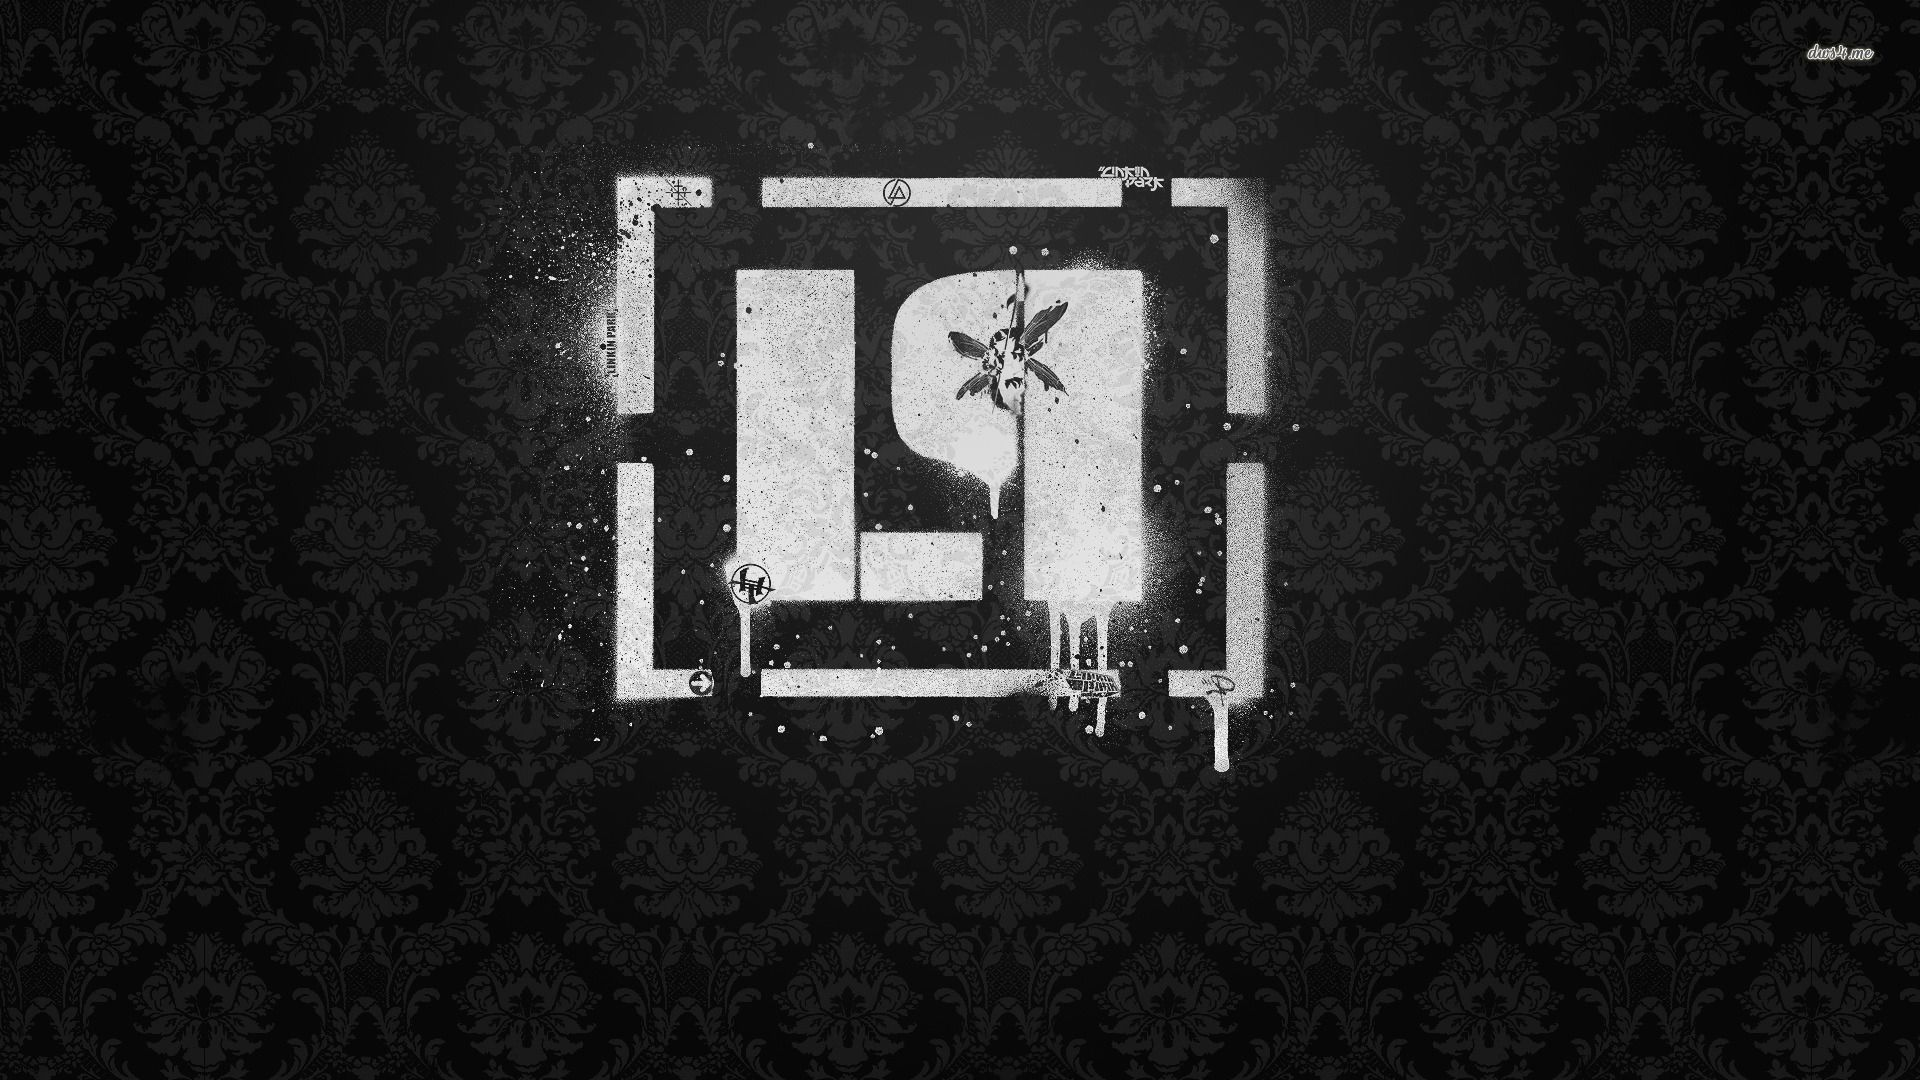 Download Linkin Park Entertainment mobile wallpapers